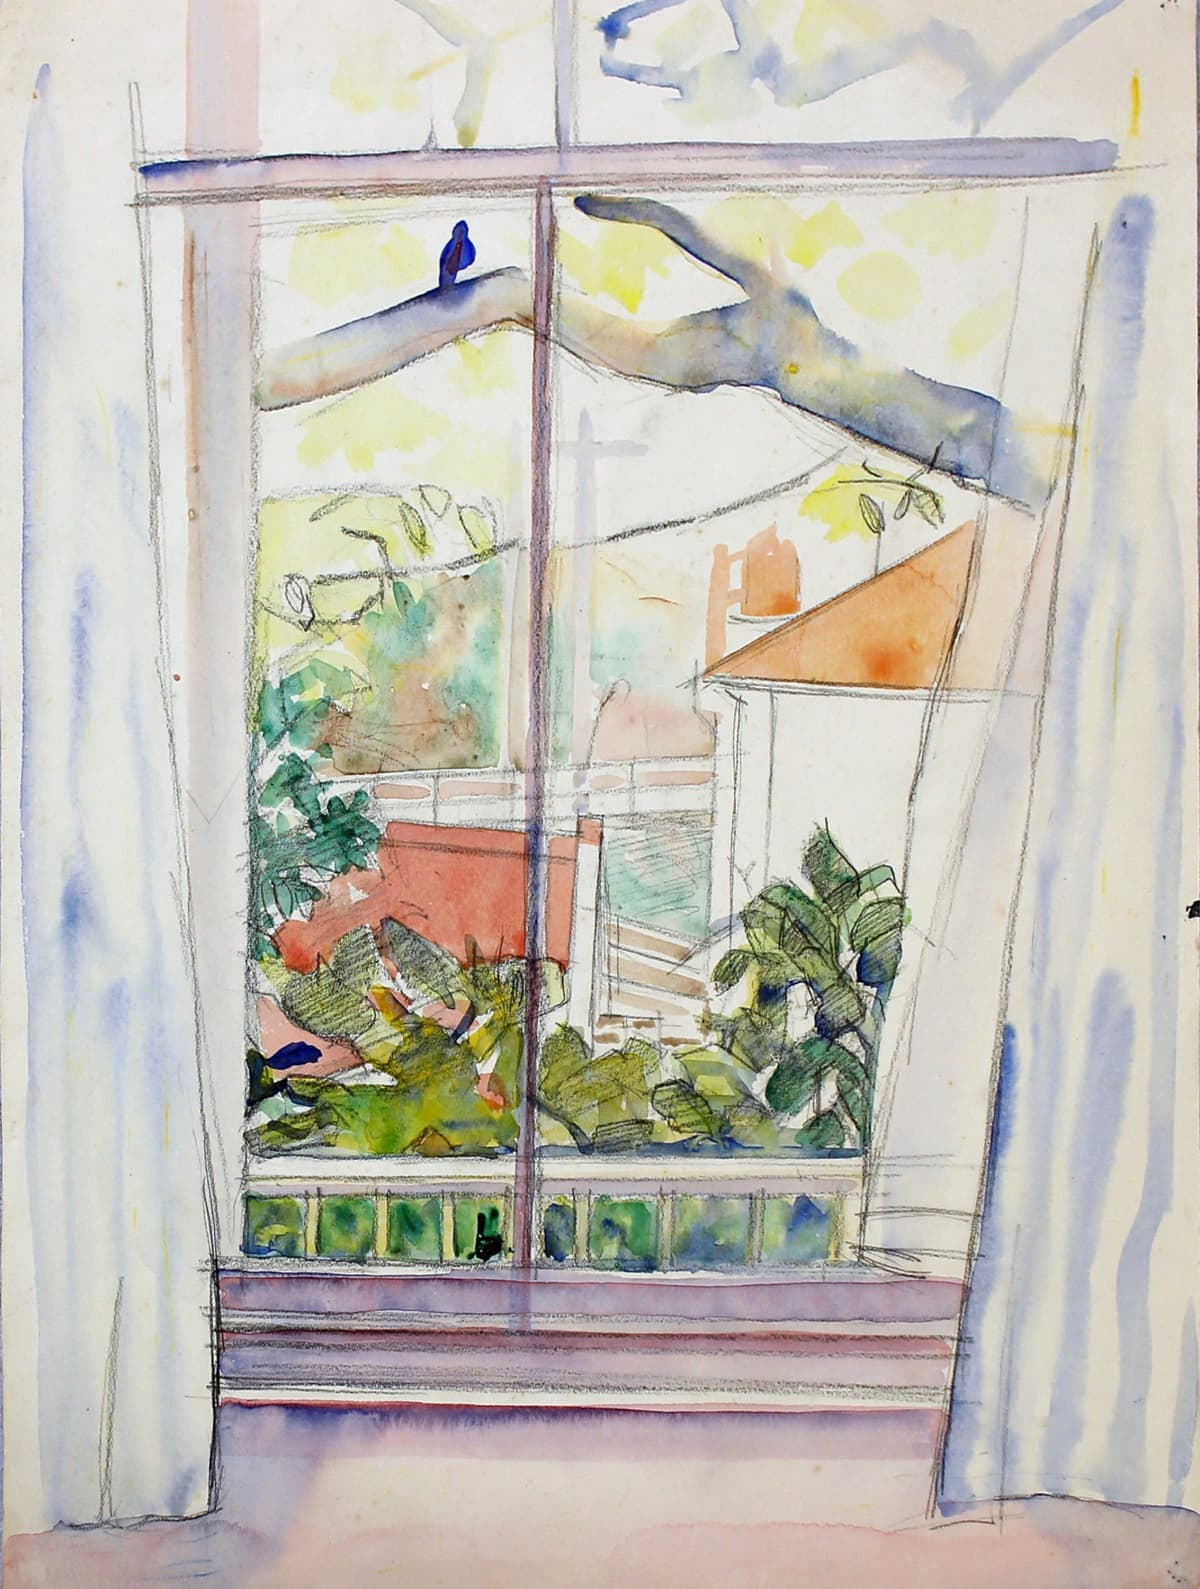 Rita Angus View From Studio Window, Thorndon, 1960s Watercolour and pencil on paper 15 x 11 in 38.1 x 28 cm